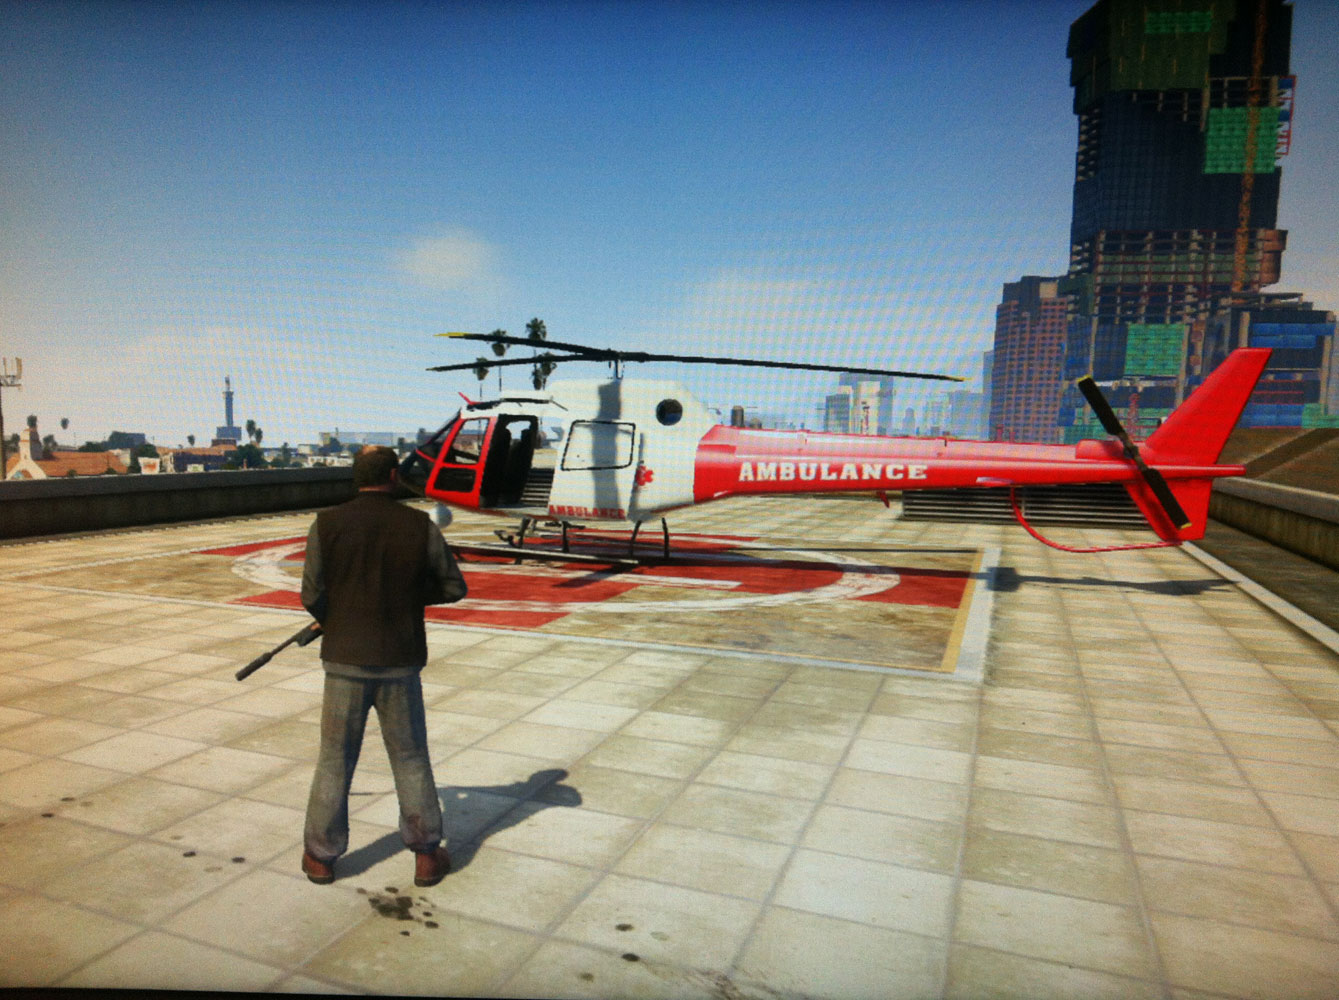 Helicopter Location in GTA 5 and GTA Online - GamingReality